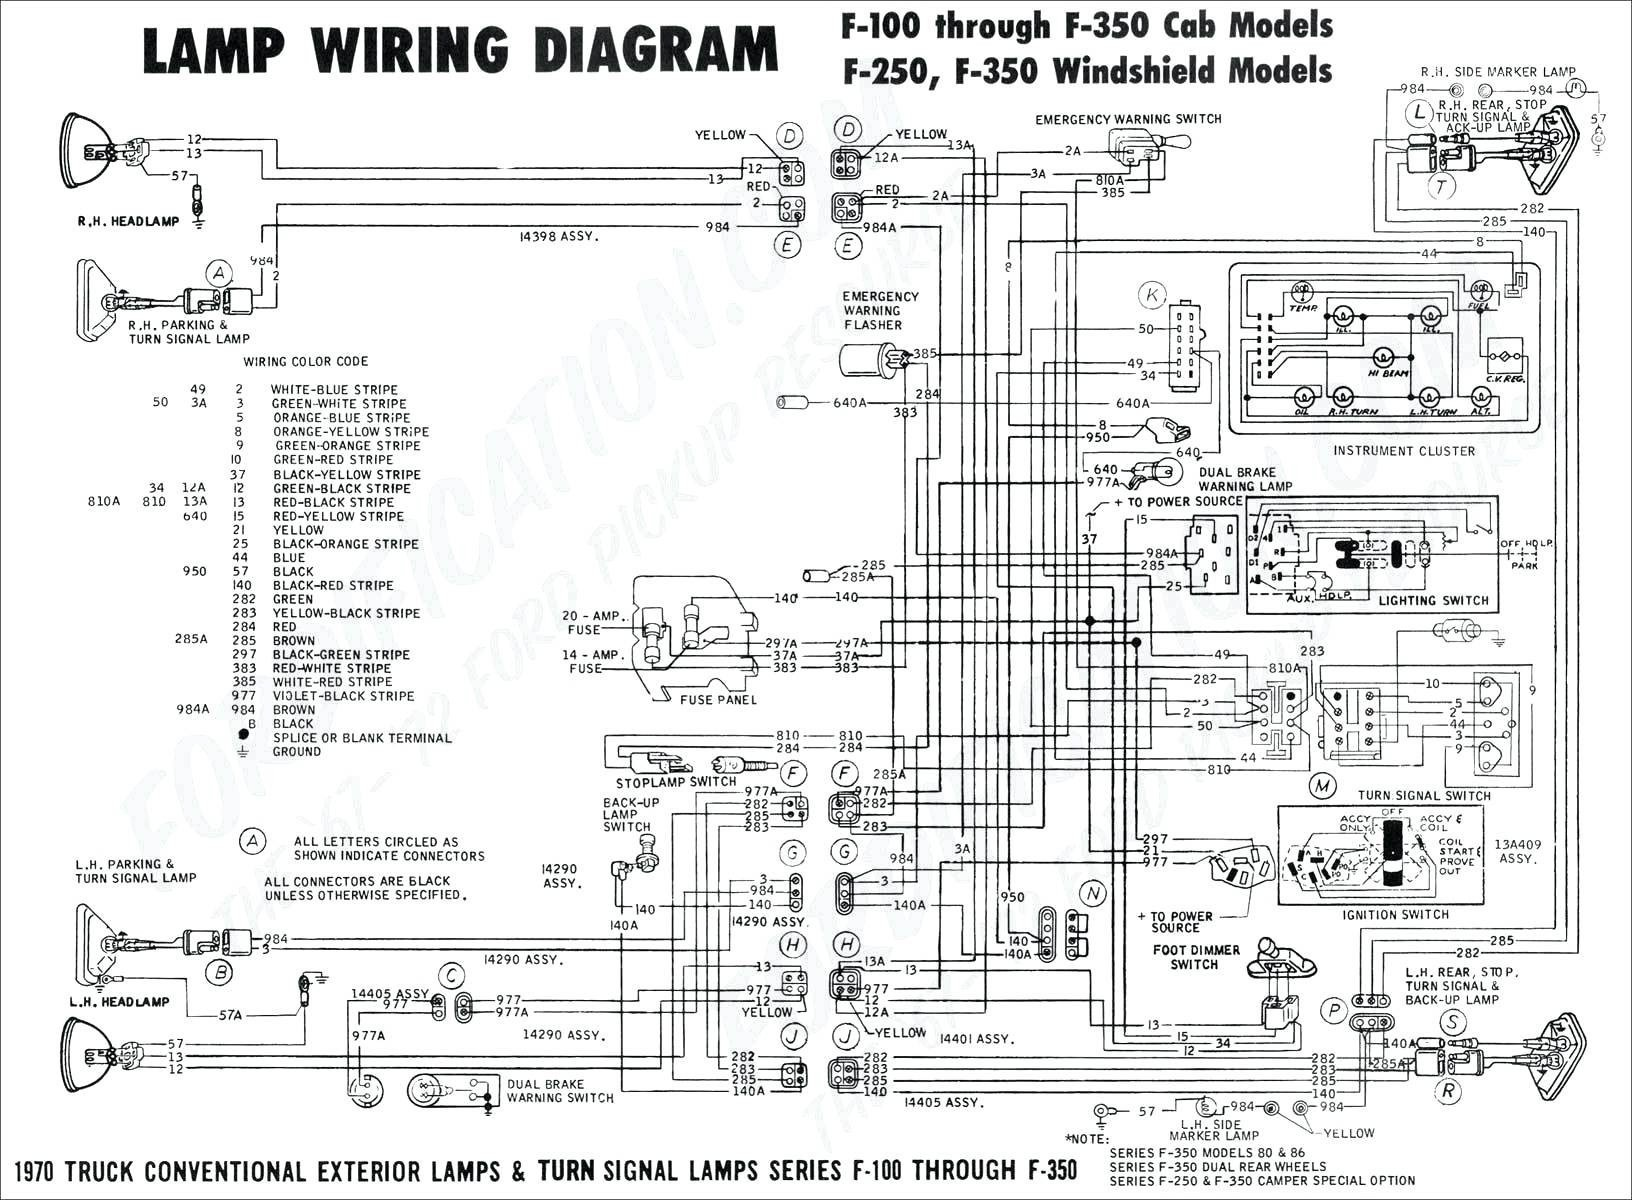 Tork Wiring Schematic for Lighting Contactor and Photocell Eaton atc 800 Wiring Diagram Contactor Wiring Diagram A1 A2 Of Tork Wiring Schematic for Lighting Contactor and Photocell